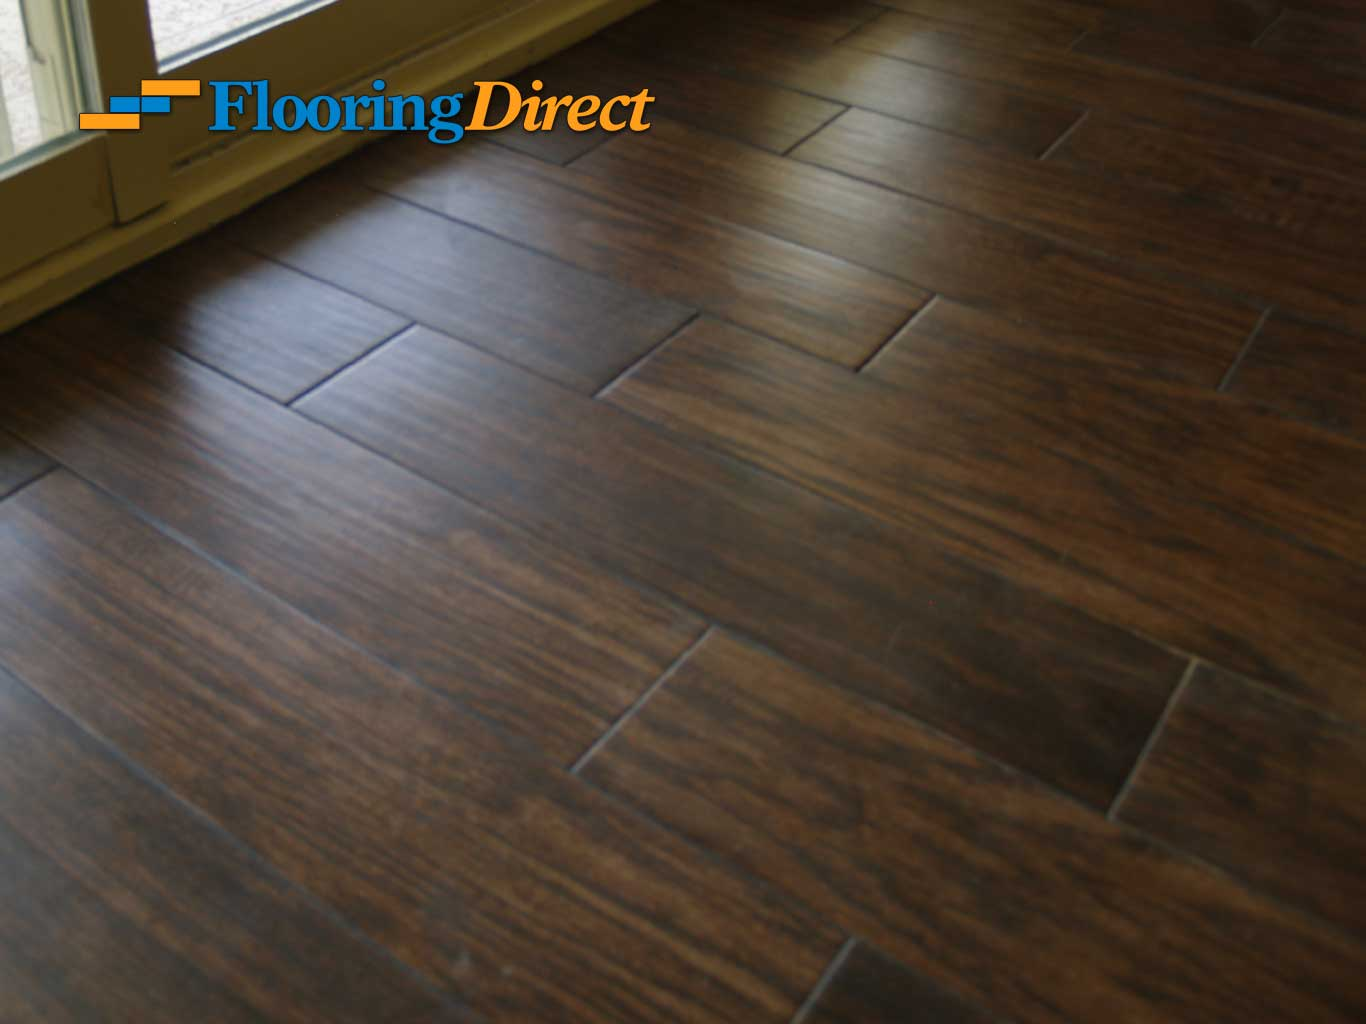 Wood Look Tile Flooring By Direct Serving All Of Dfw Including Farmers  Branch - Tile Wood Look Flooring – Gurus Floor